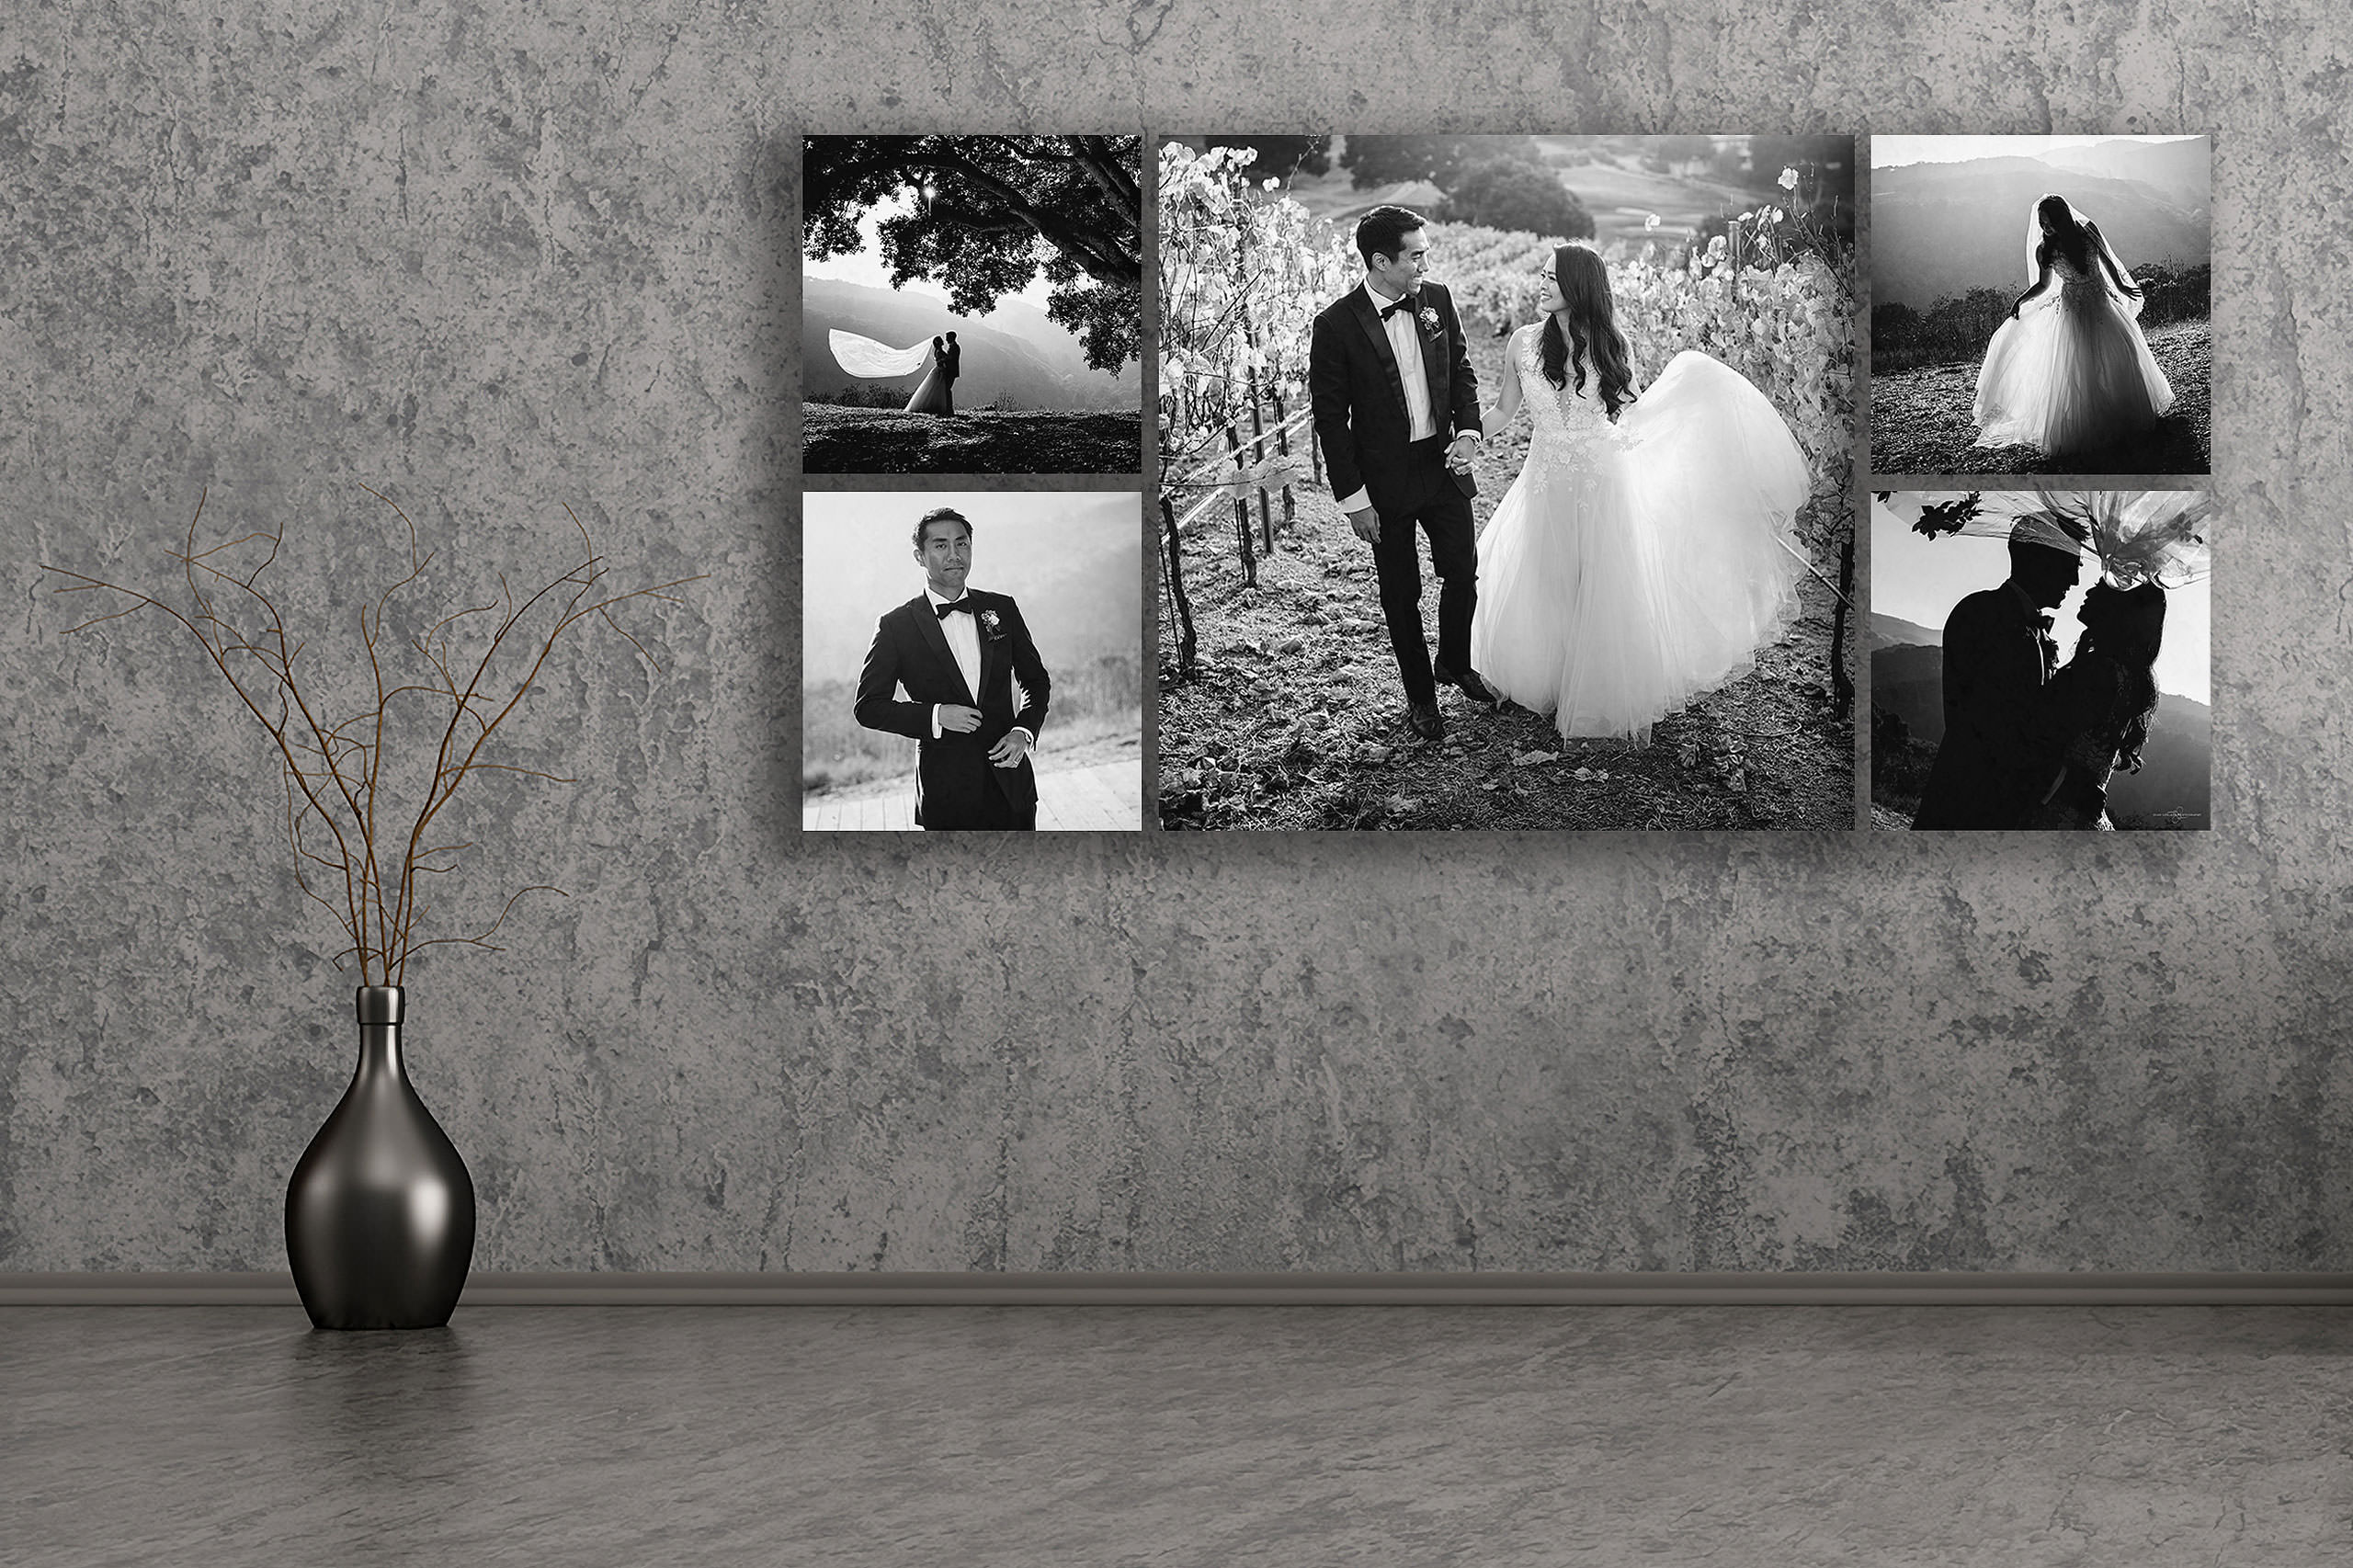 Wall art collection by Carmel Valley Ranch Wedding Photographer Sean LeBlanc